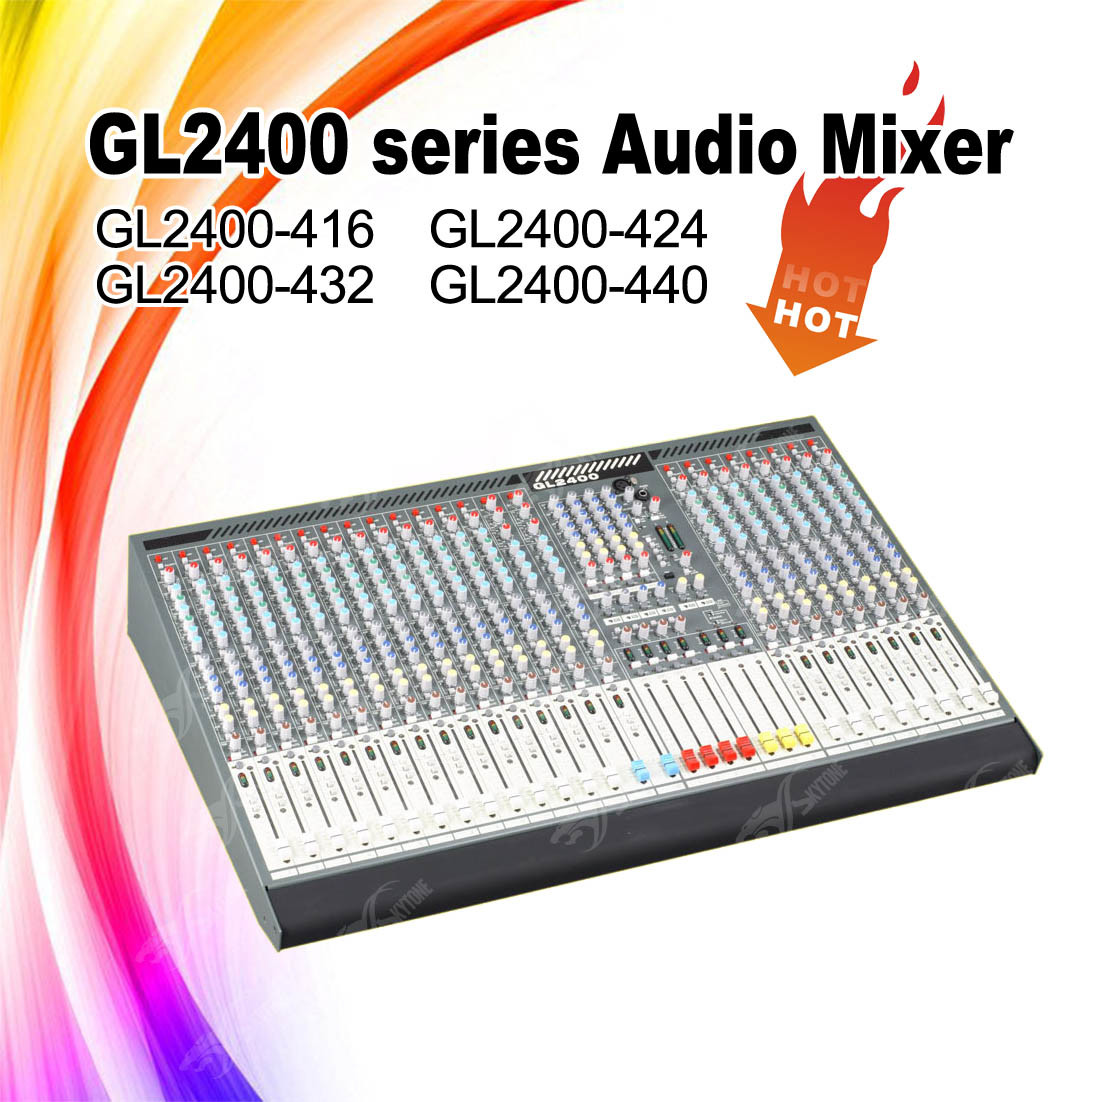 Skytone Produced Mixing Console Gl2400-424 Audio Mixer